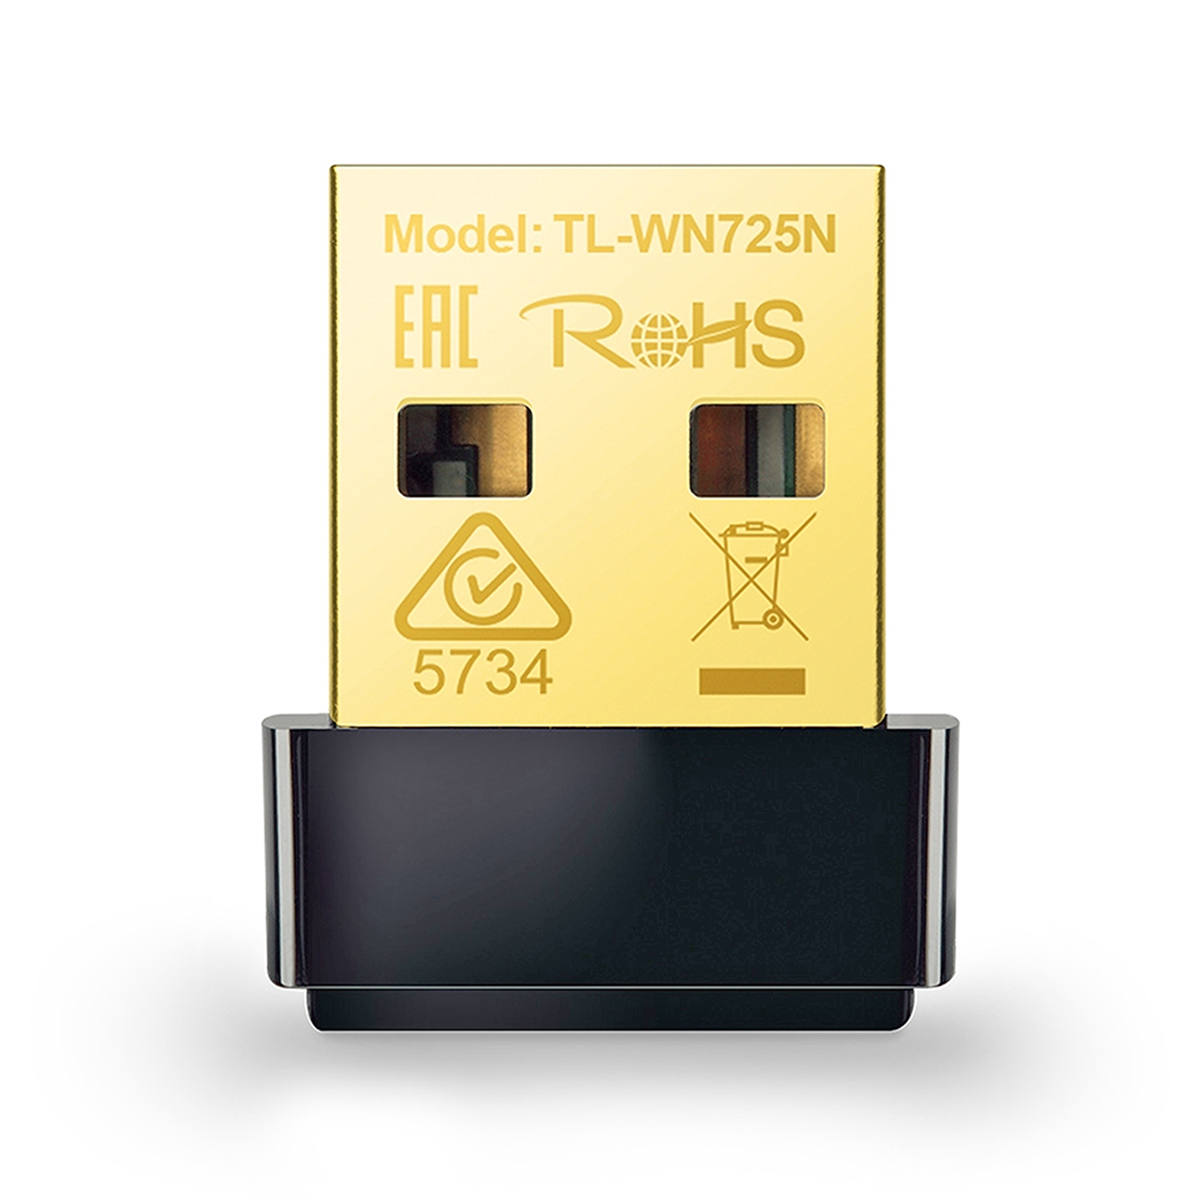 ADAPTADOR REDE USB WIRELESS 150MBPS TP-LINK TL-WN725N